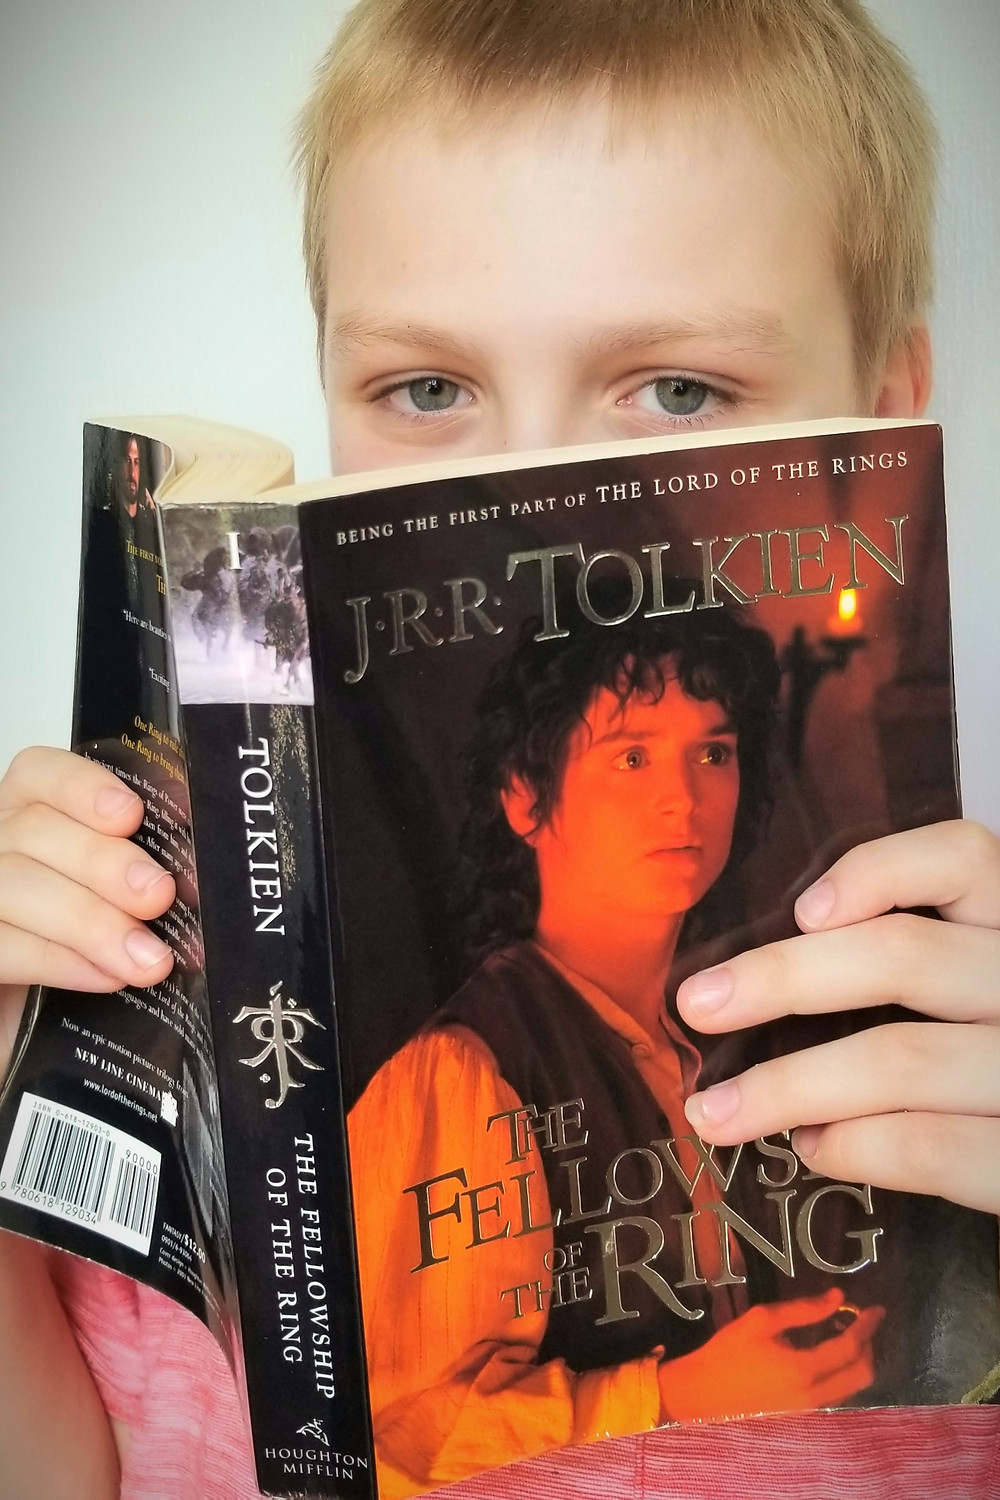 fellowship of the ring book review, lord of the rings book cover, high school reading list